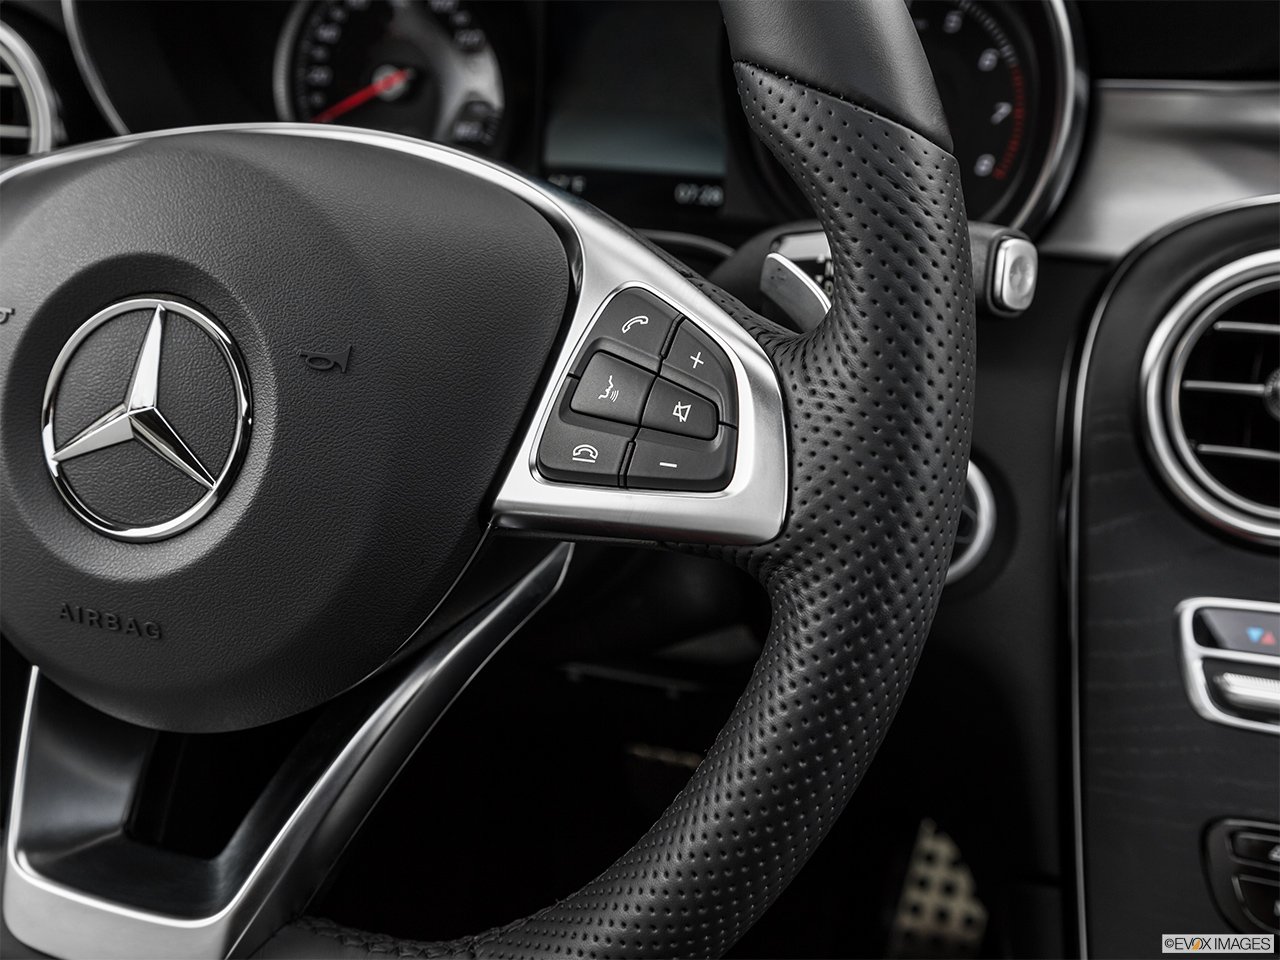 2019 Mercedes-Benz GLC-Class Coupe GLC 300 4MATIC Steering Wheel Controls (Right Side)